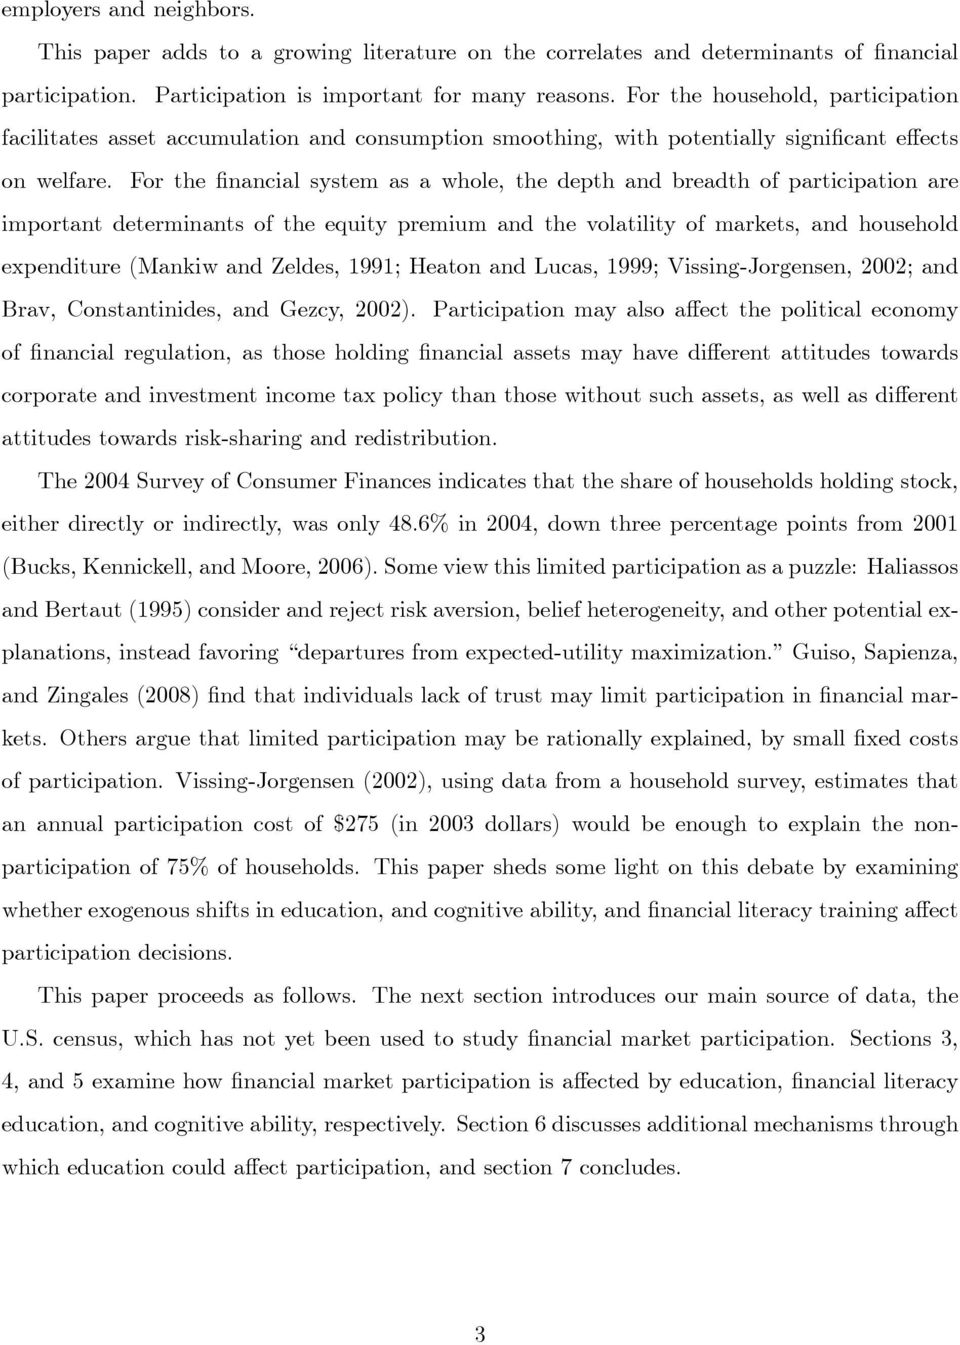 For the nancial system as a whole, the depth and breadth of participation are important determinants of the equity premium and the volatility of markets, and household expenditure (Mankiw and Zeldes,